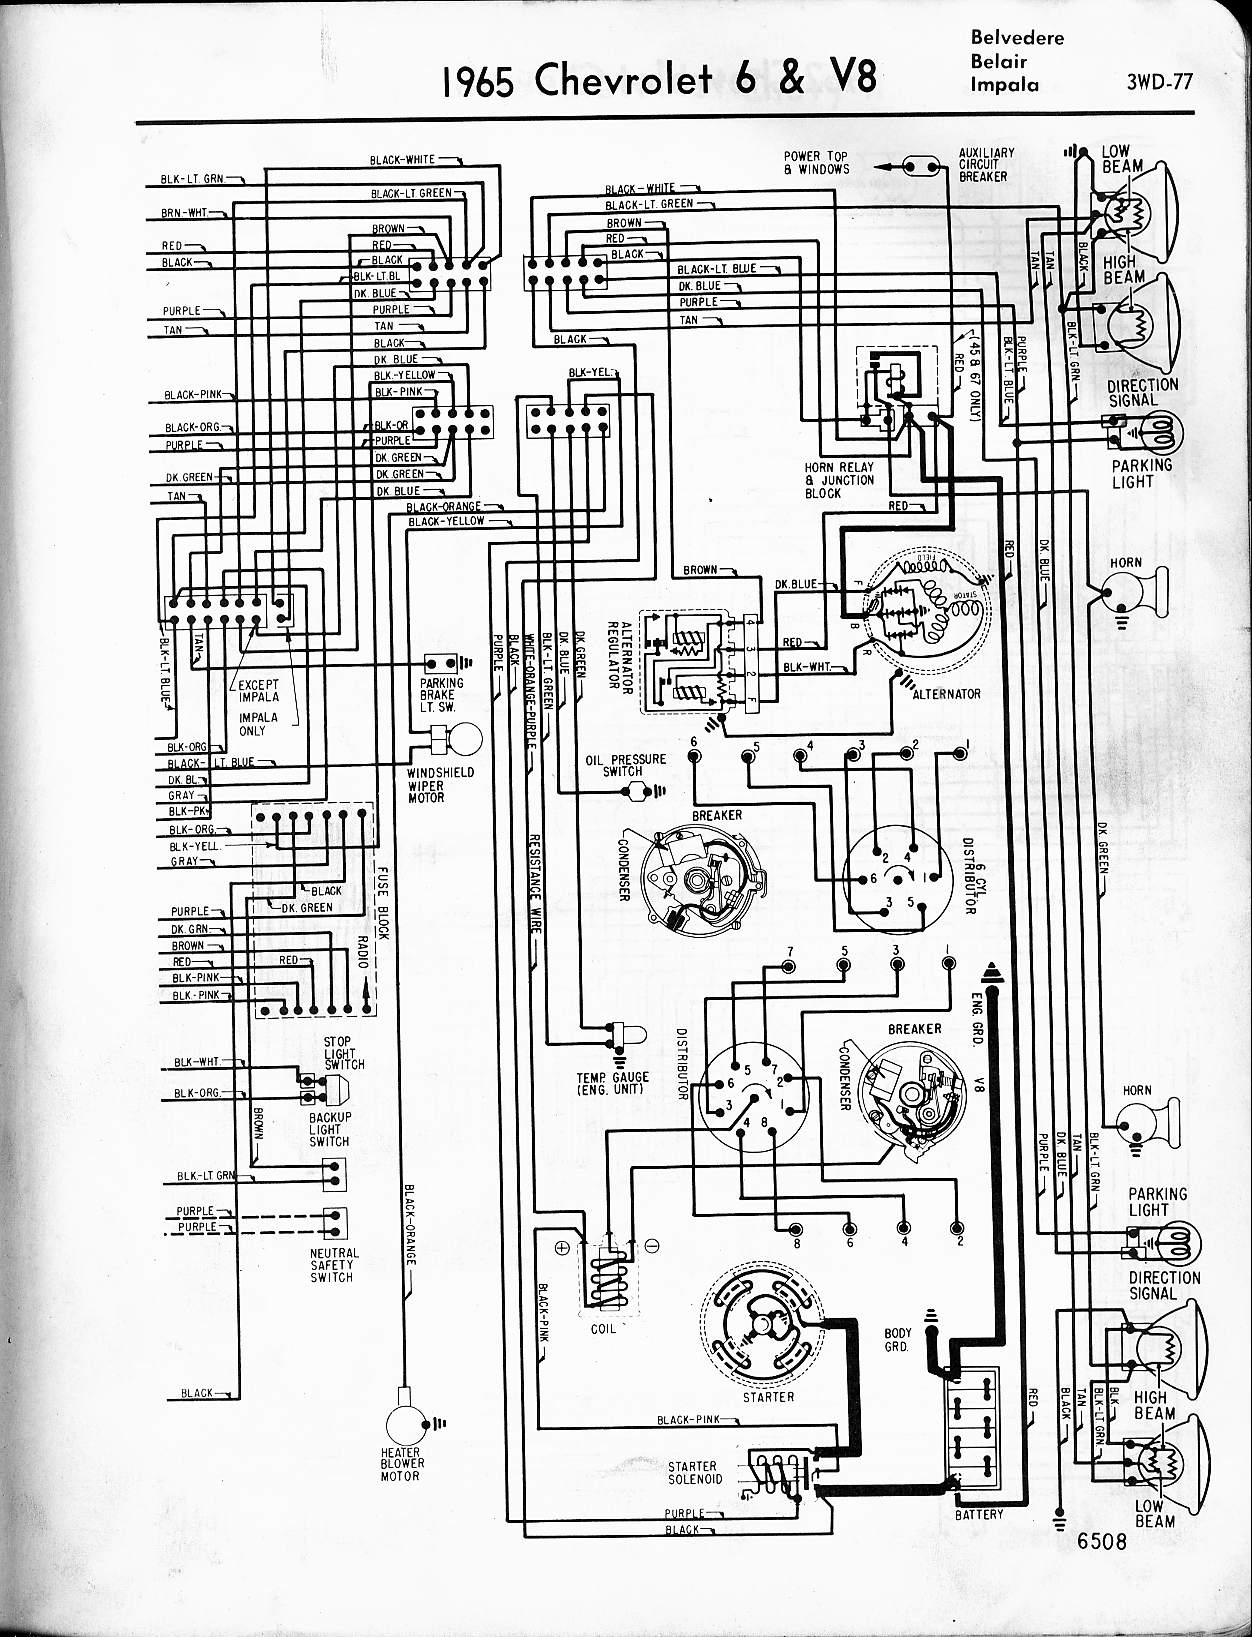 Chevy Diagrams 1965 Chevelle Turn Signal Wiring Diagram 1965 Chevelle Wiring  Diagram